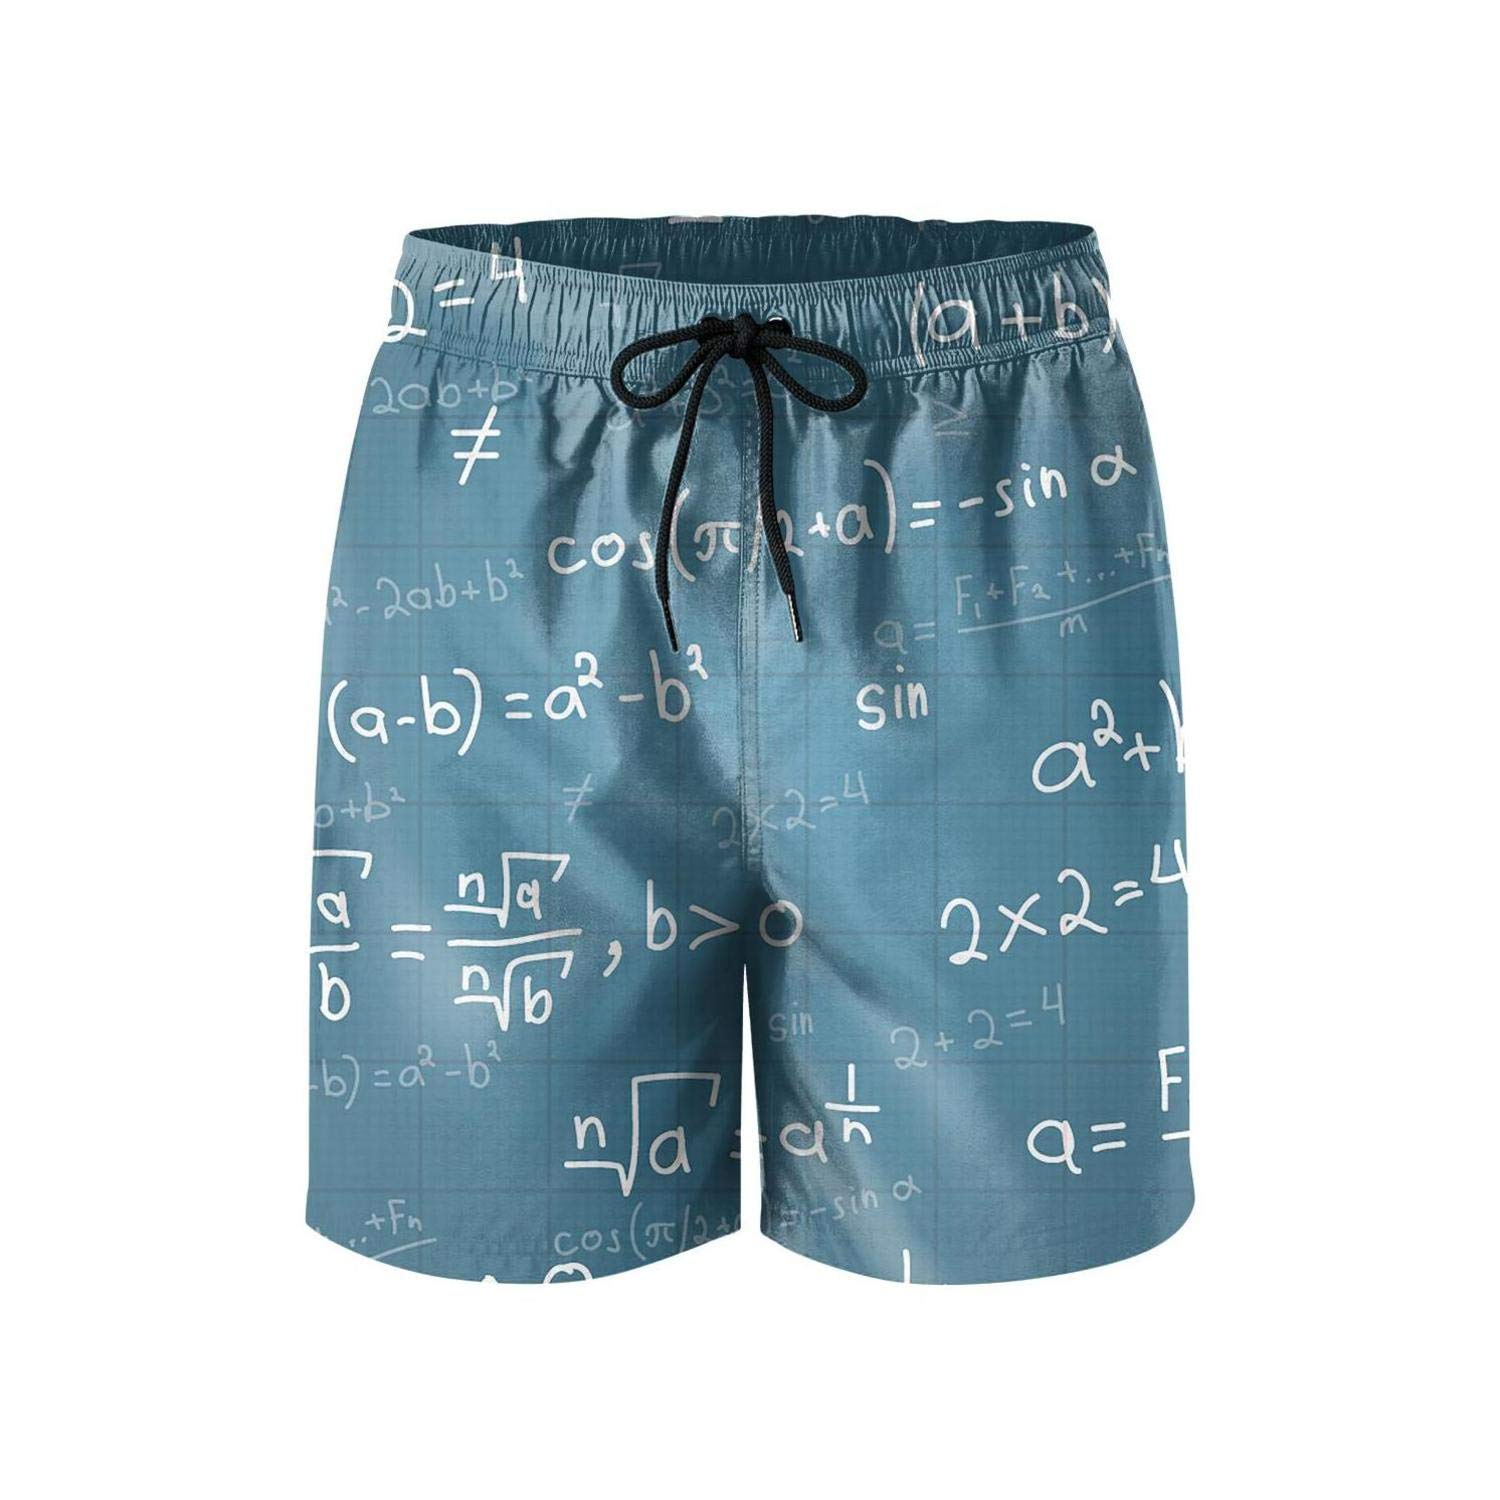 NDKSO3UH Math Equations Physics Science Mens Swim Trunks Quick Dry Tropical Mesh Lining Swimwear with Drawstring